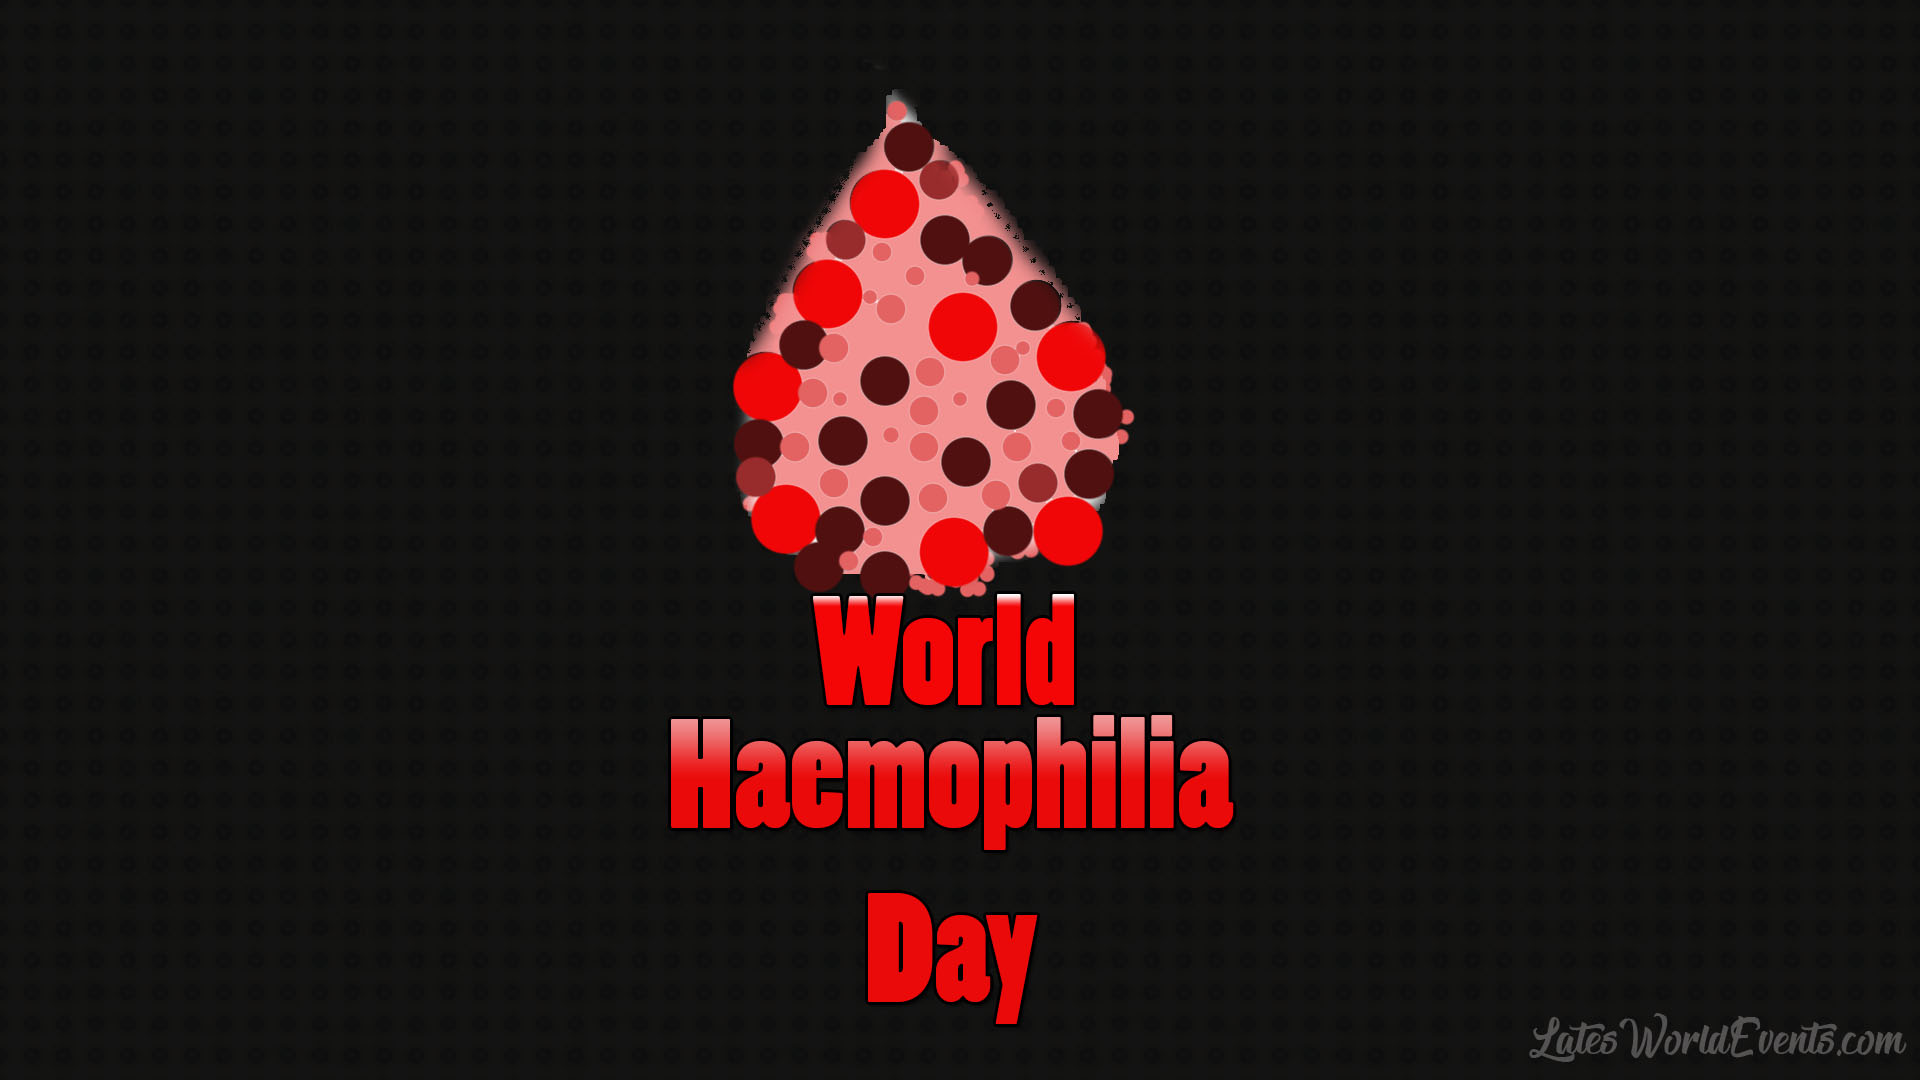 world-heamophilia-day-poster-2020